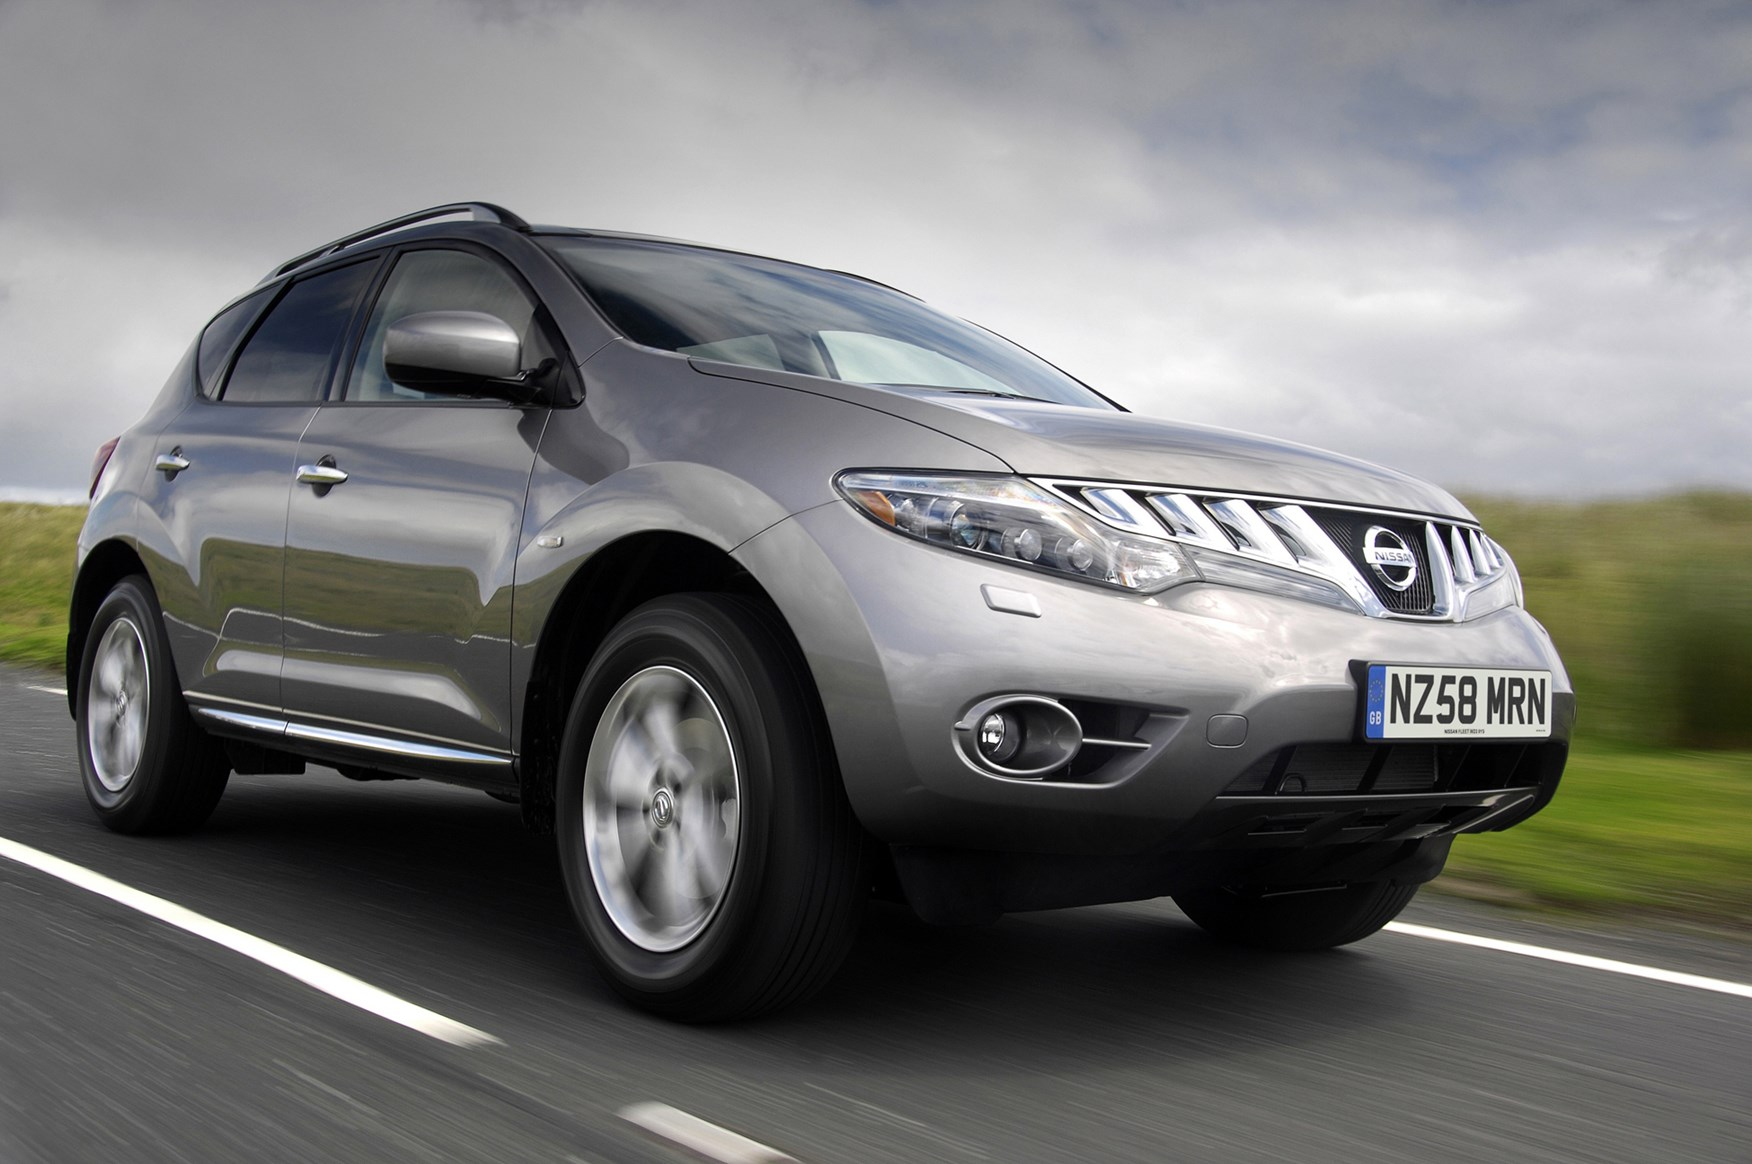 nissan murano estate review 2008 2011 parkers rh parkers co uk 2006 Murano 2012 Murano